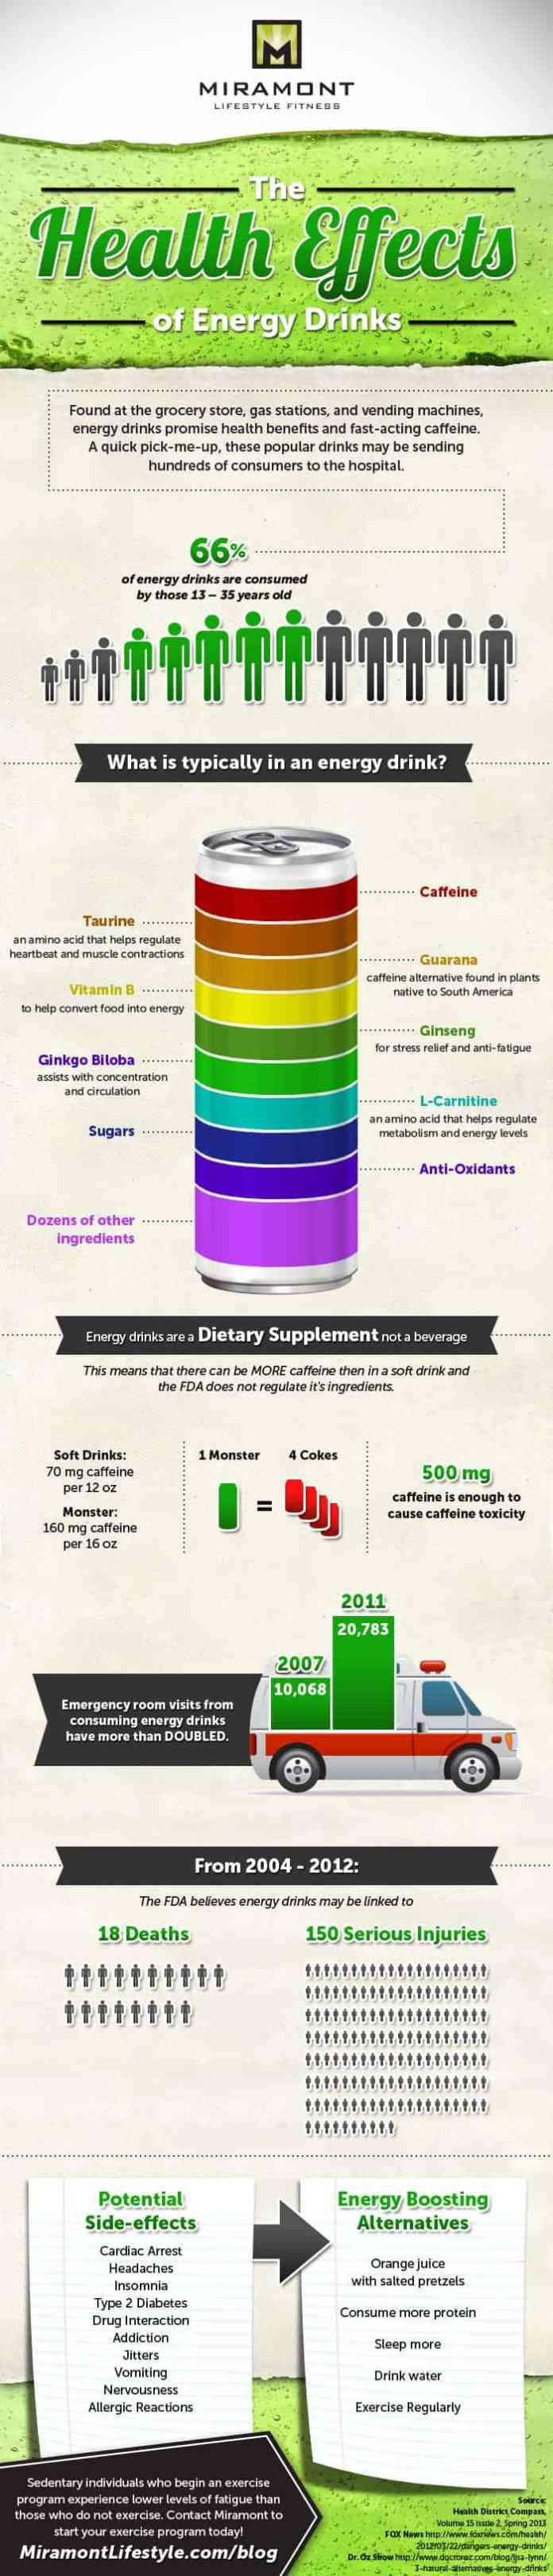 health effect of energy drinks